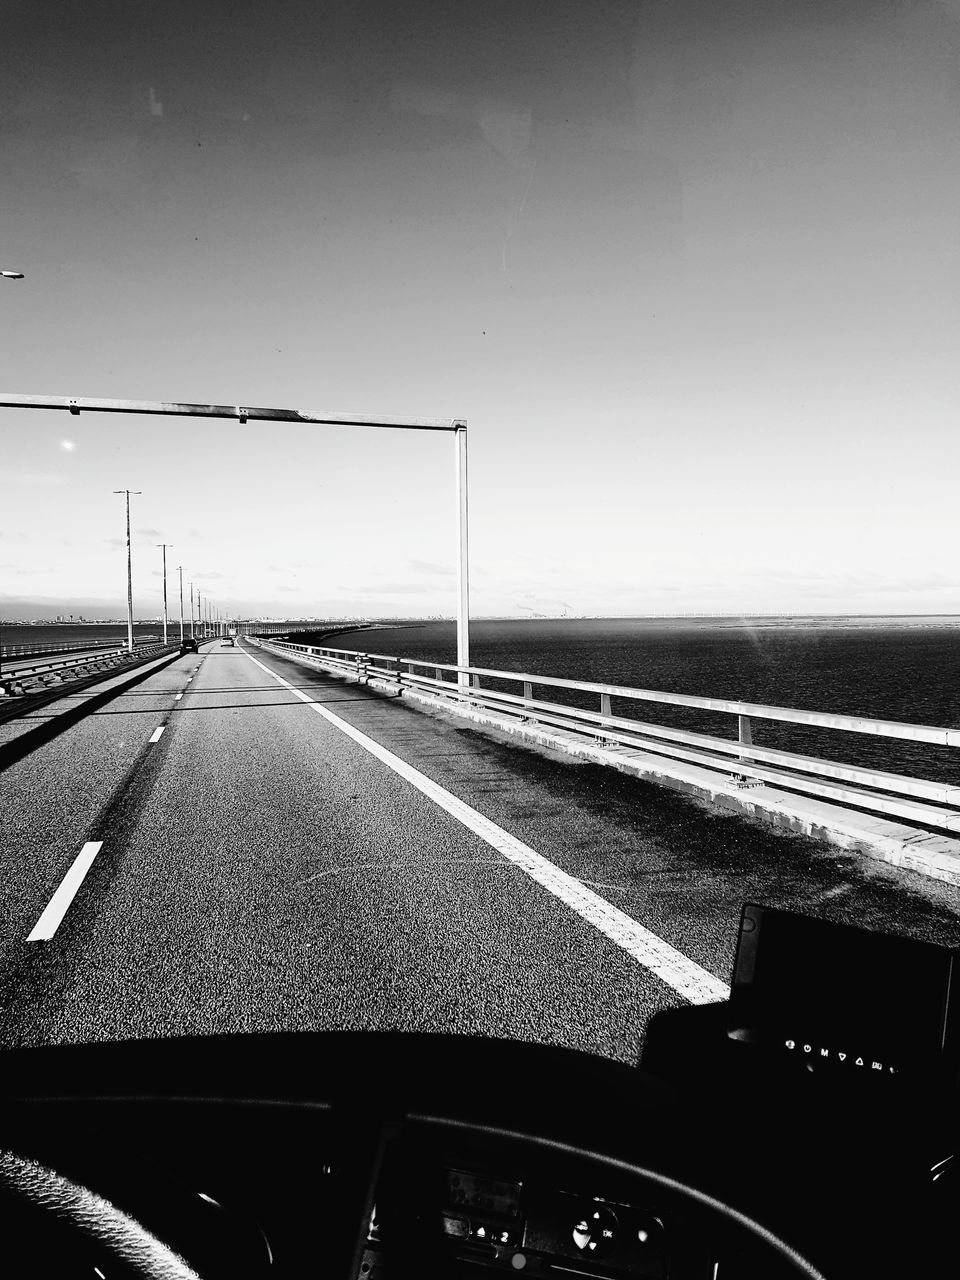 transportation, road, car, vehicle interior, car interior, the way forward, highway, windshield, land vehicle, car point of view, mode of transport, empty, dashboard, driving, street, no people, day, sky, speedometer, outdoors